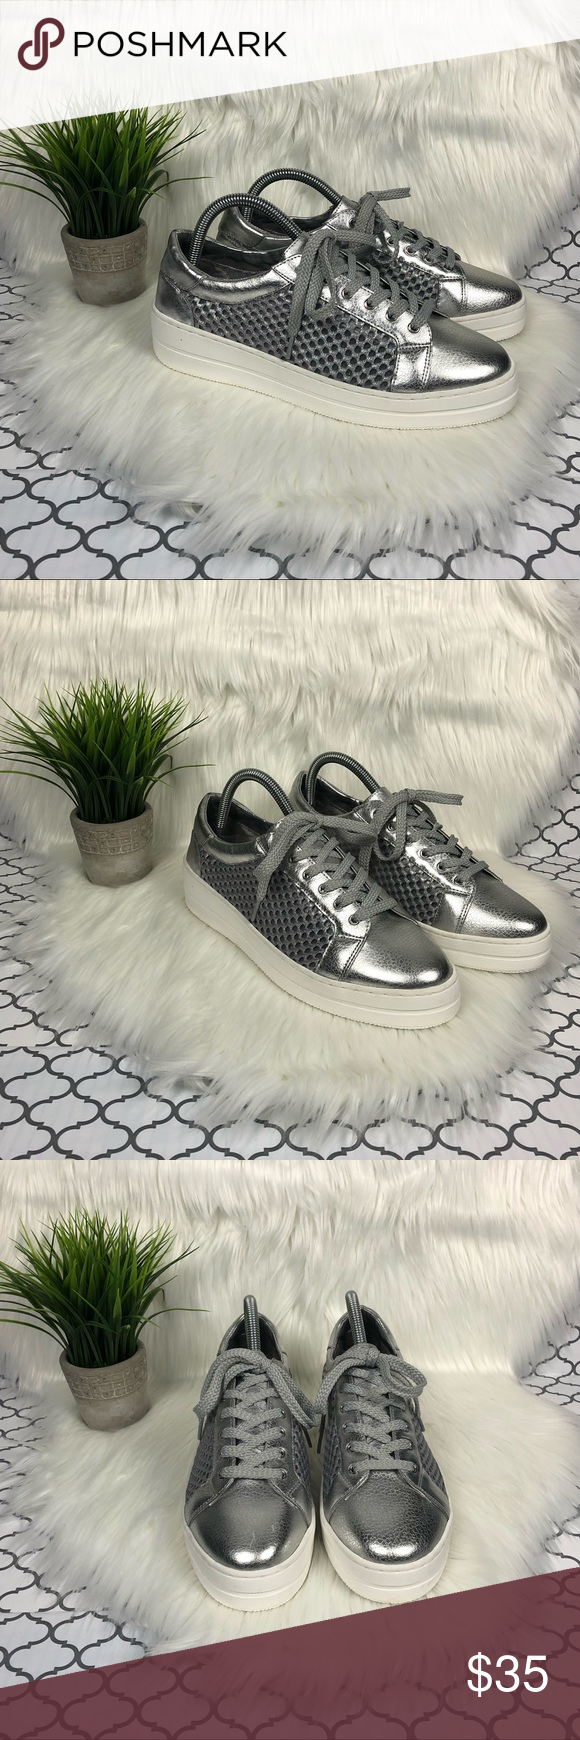 1a66e5aabf6 Steve Madden Silver Neon Sneakers Steven by Steve Madden silver ...